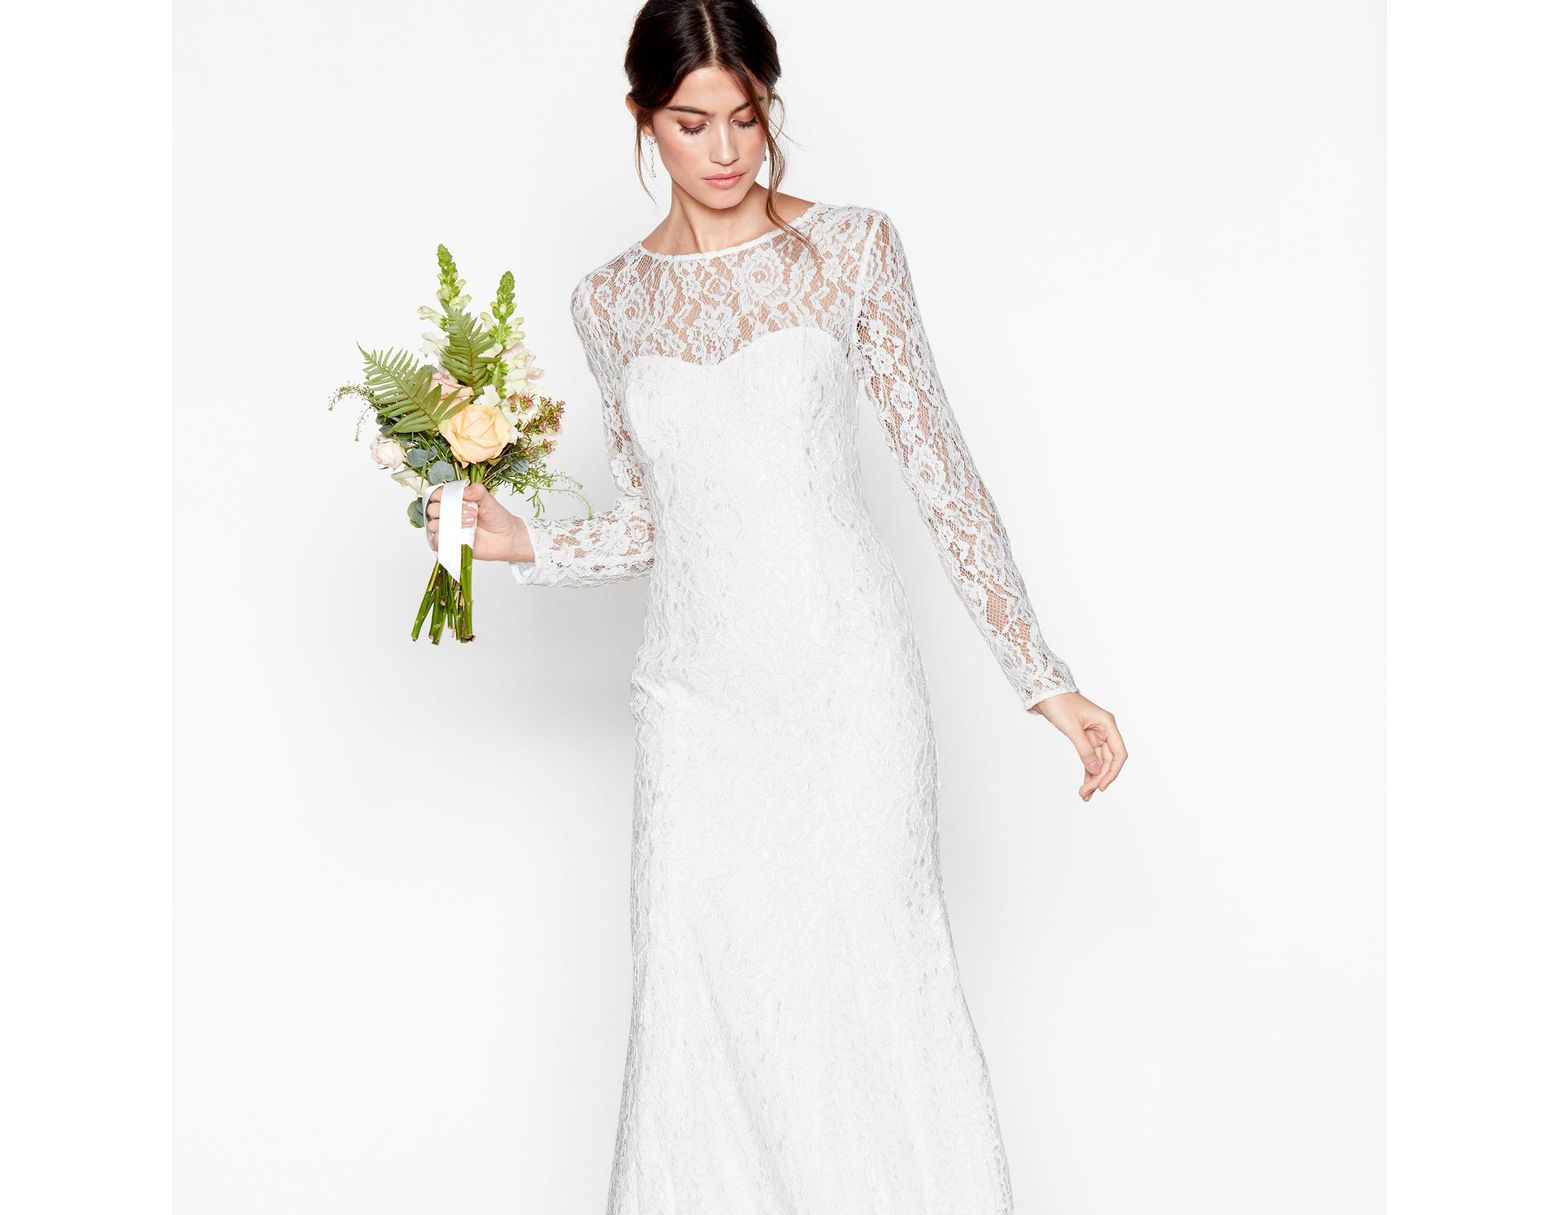 a0efdd3e31f6 Début Ivory Lace 'eleanor' High Neck Long Sleeves Full Length Wedding Dress  in White - Lyst